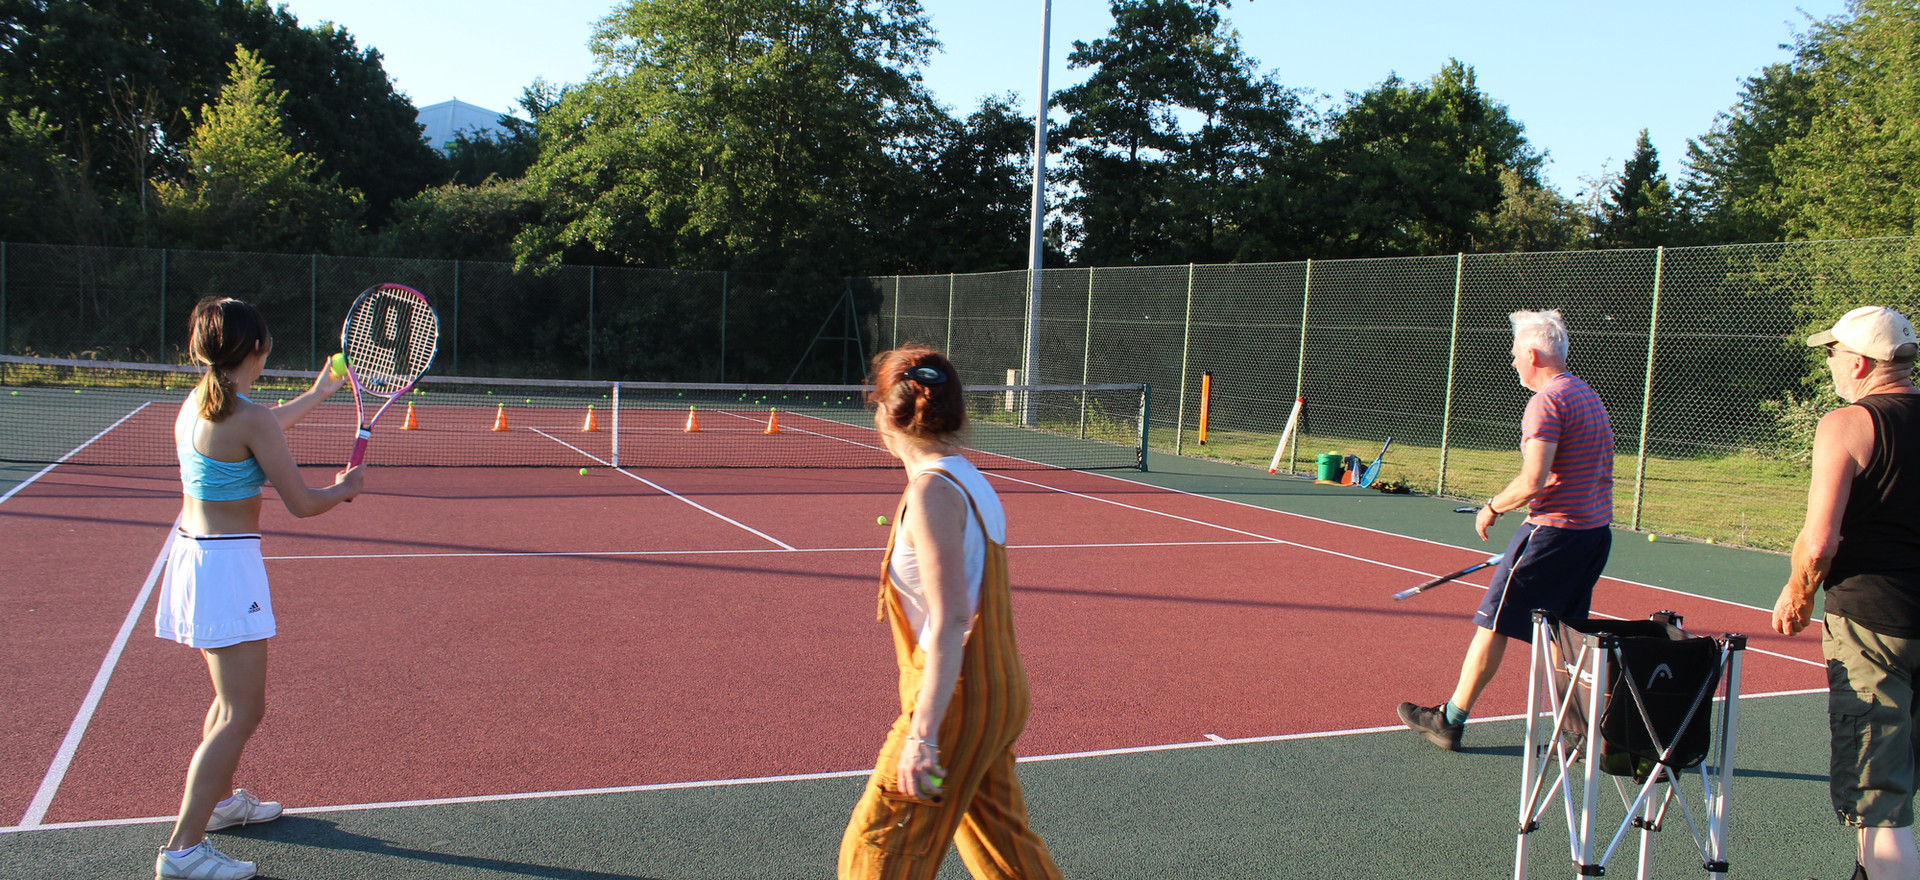 The usual mayhem at Thursday's cardio tennis session for mixed groups - it's always fun!